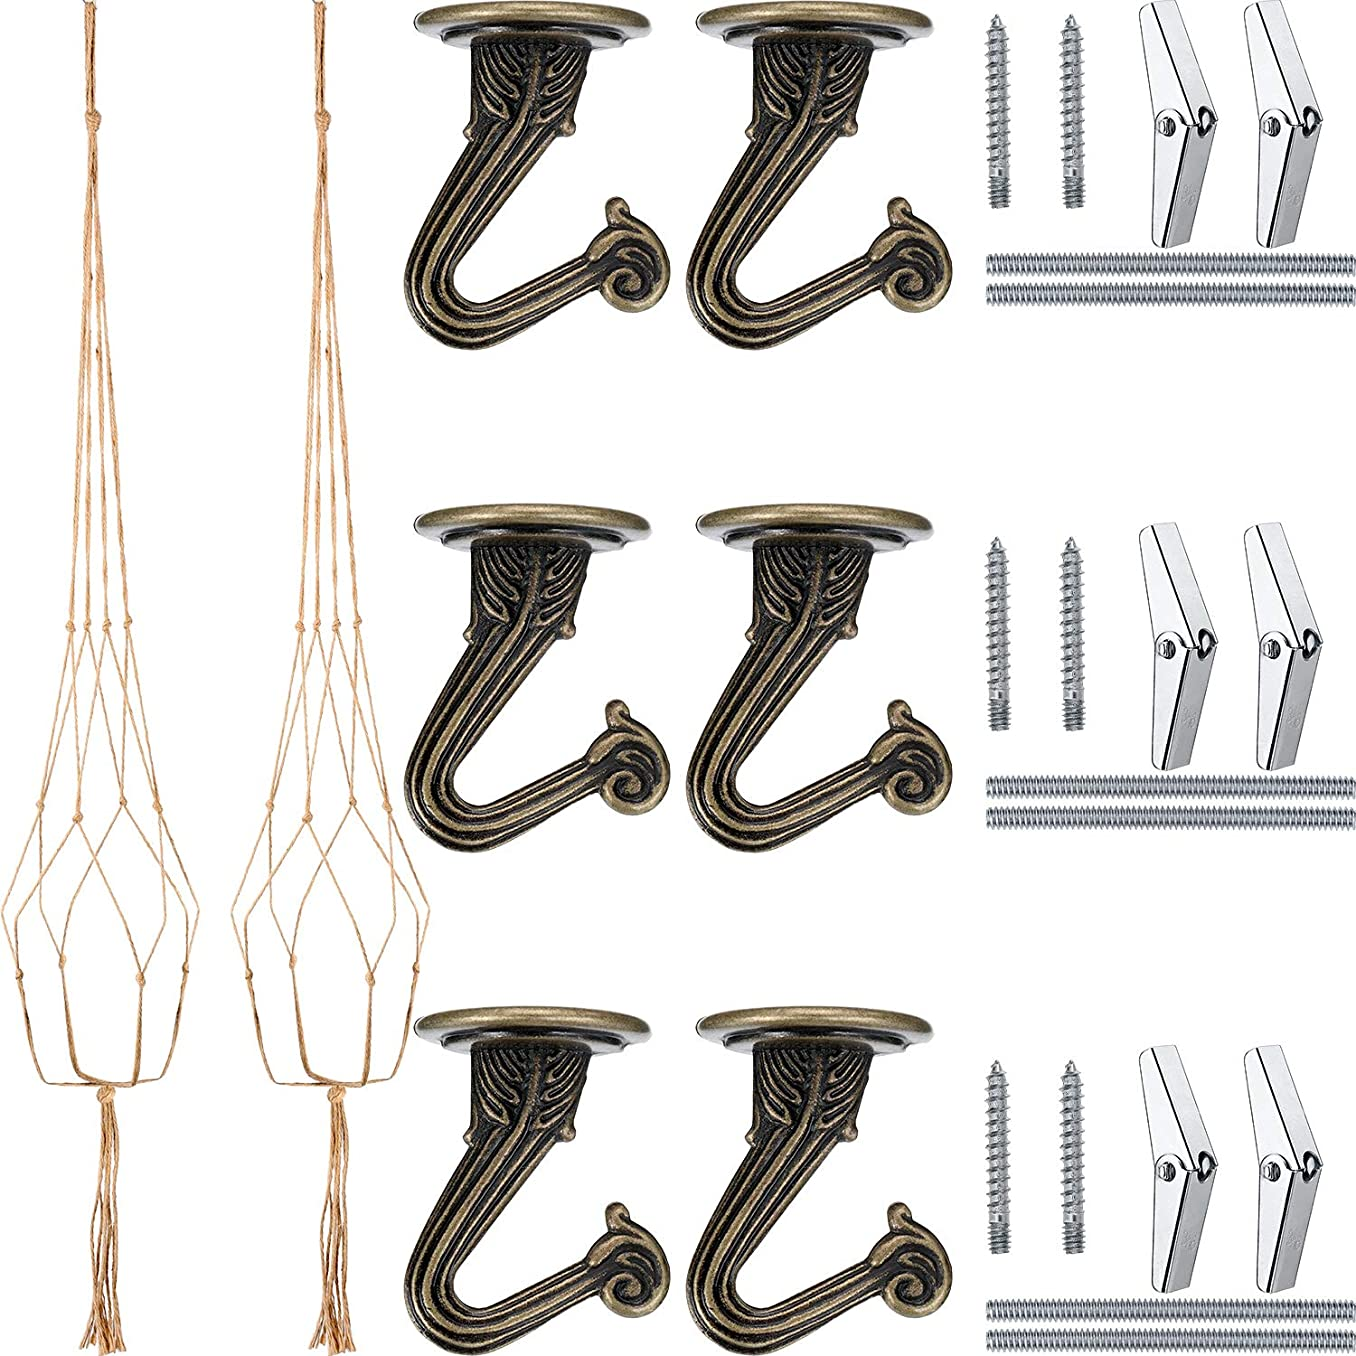 6 Sets Swag Ceiling Hooks Steel Screws Bolts and Toggle Wings with 2 Pieces Large Flower Pot Hanger Basket Holder for Ceiling Hanging Decorations (Bronze)